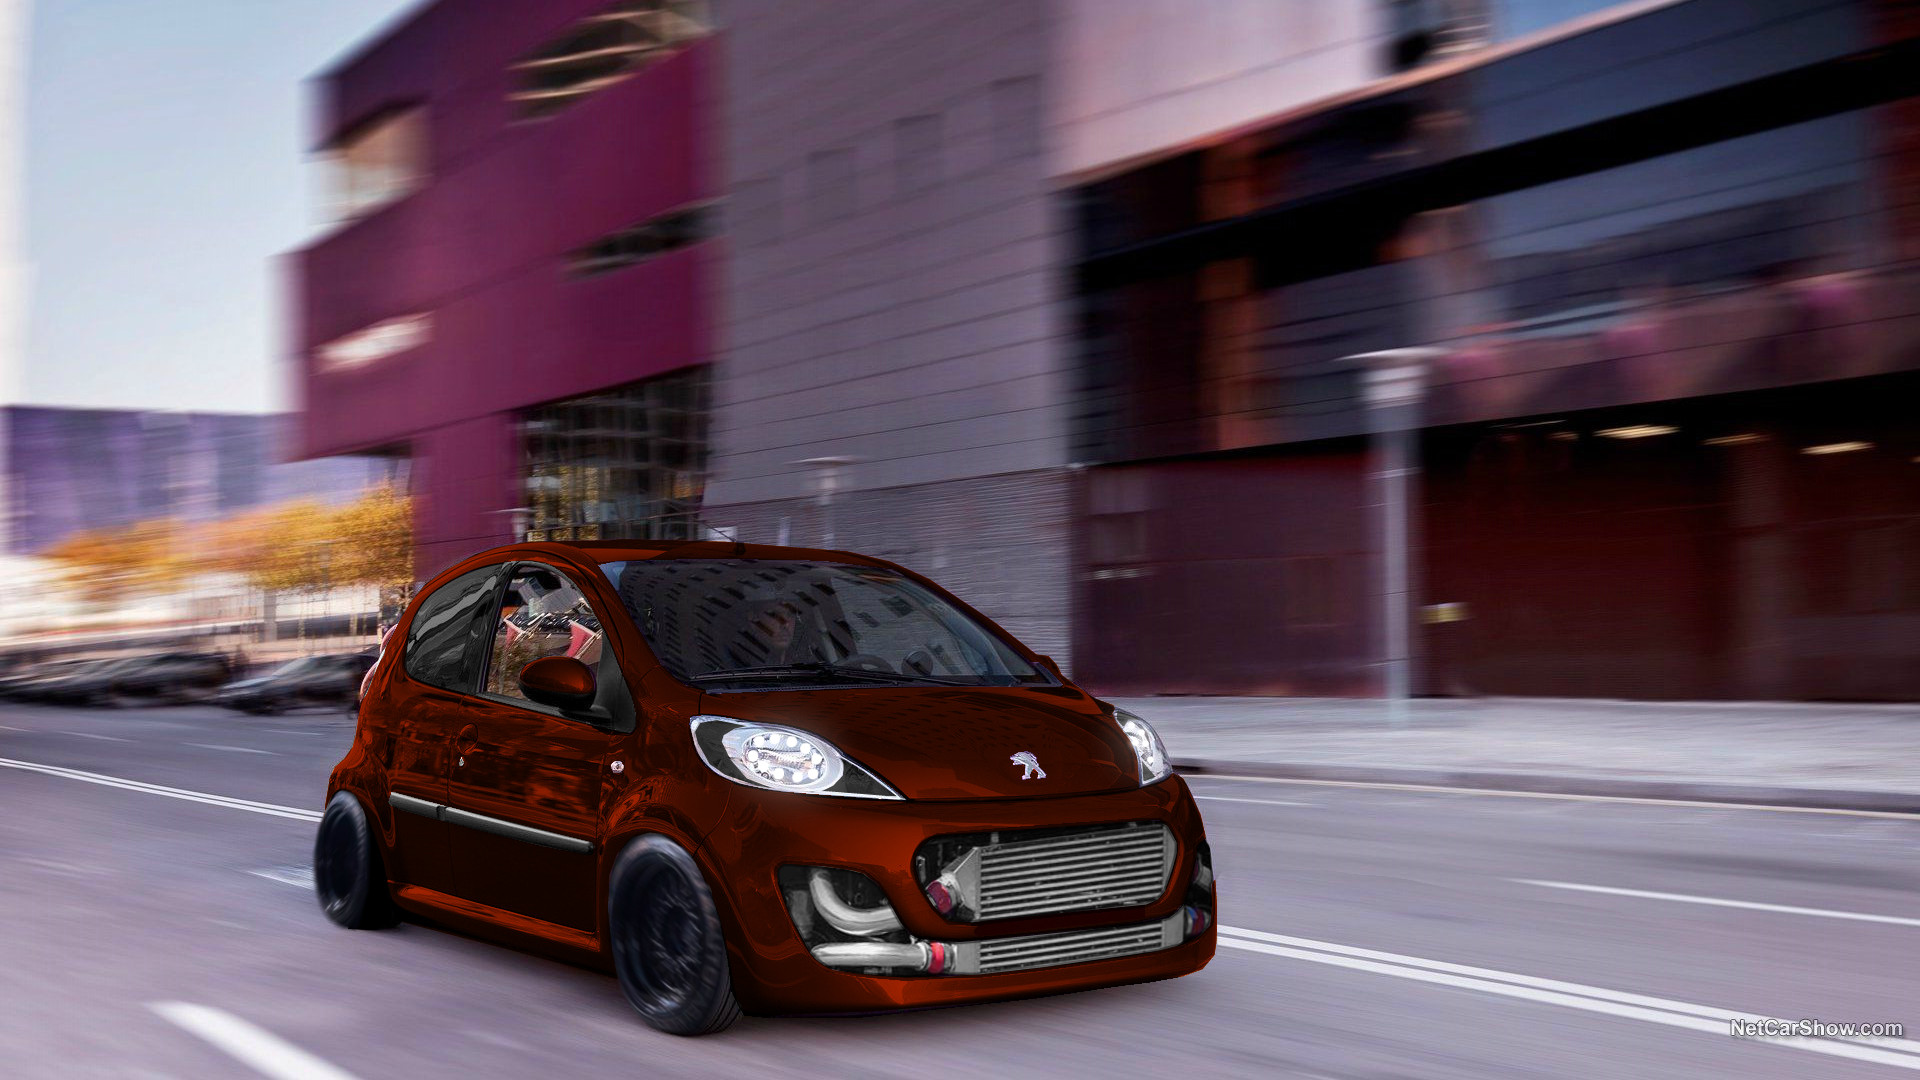 Artstation Peugeot 107 Stance And Before And After Peppe Pica Yt